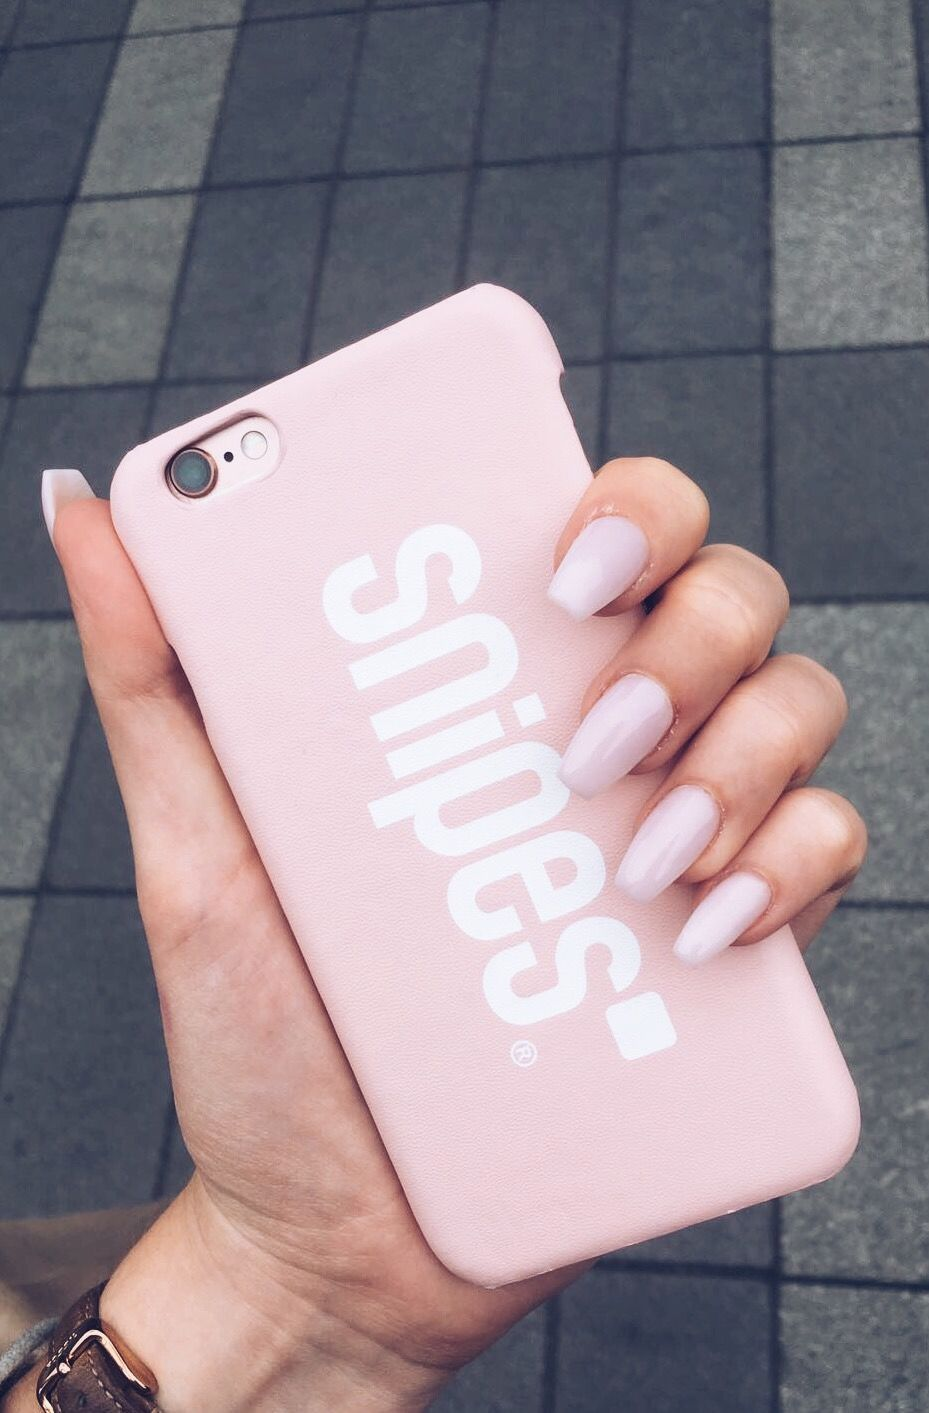 Snipes Phone Case Handy Iphone Handy Snipes Handyhulle